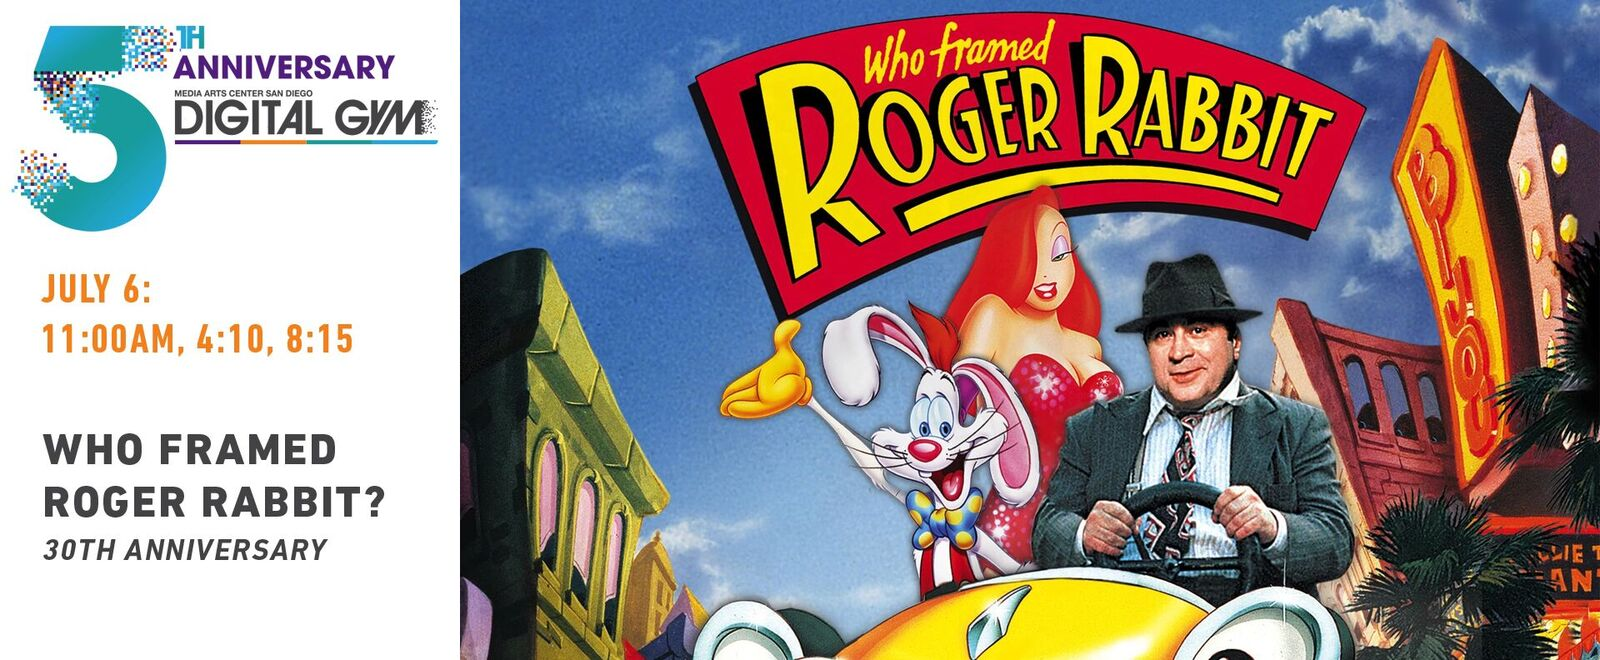 Who Framed Roger Rabbit? (July 6)